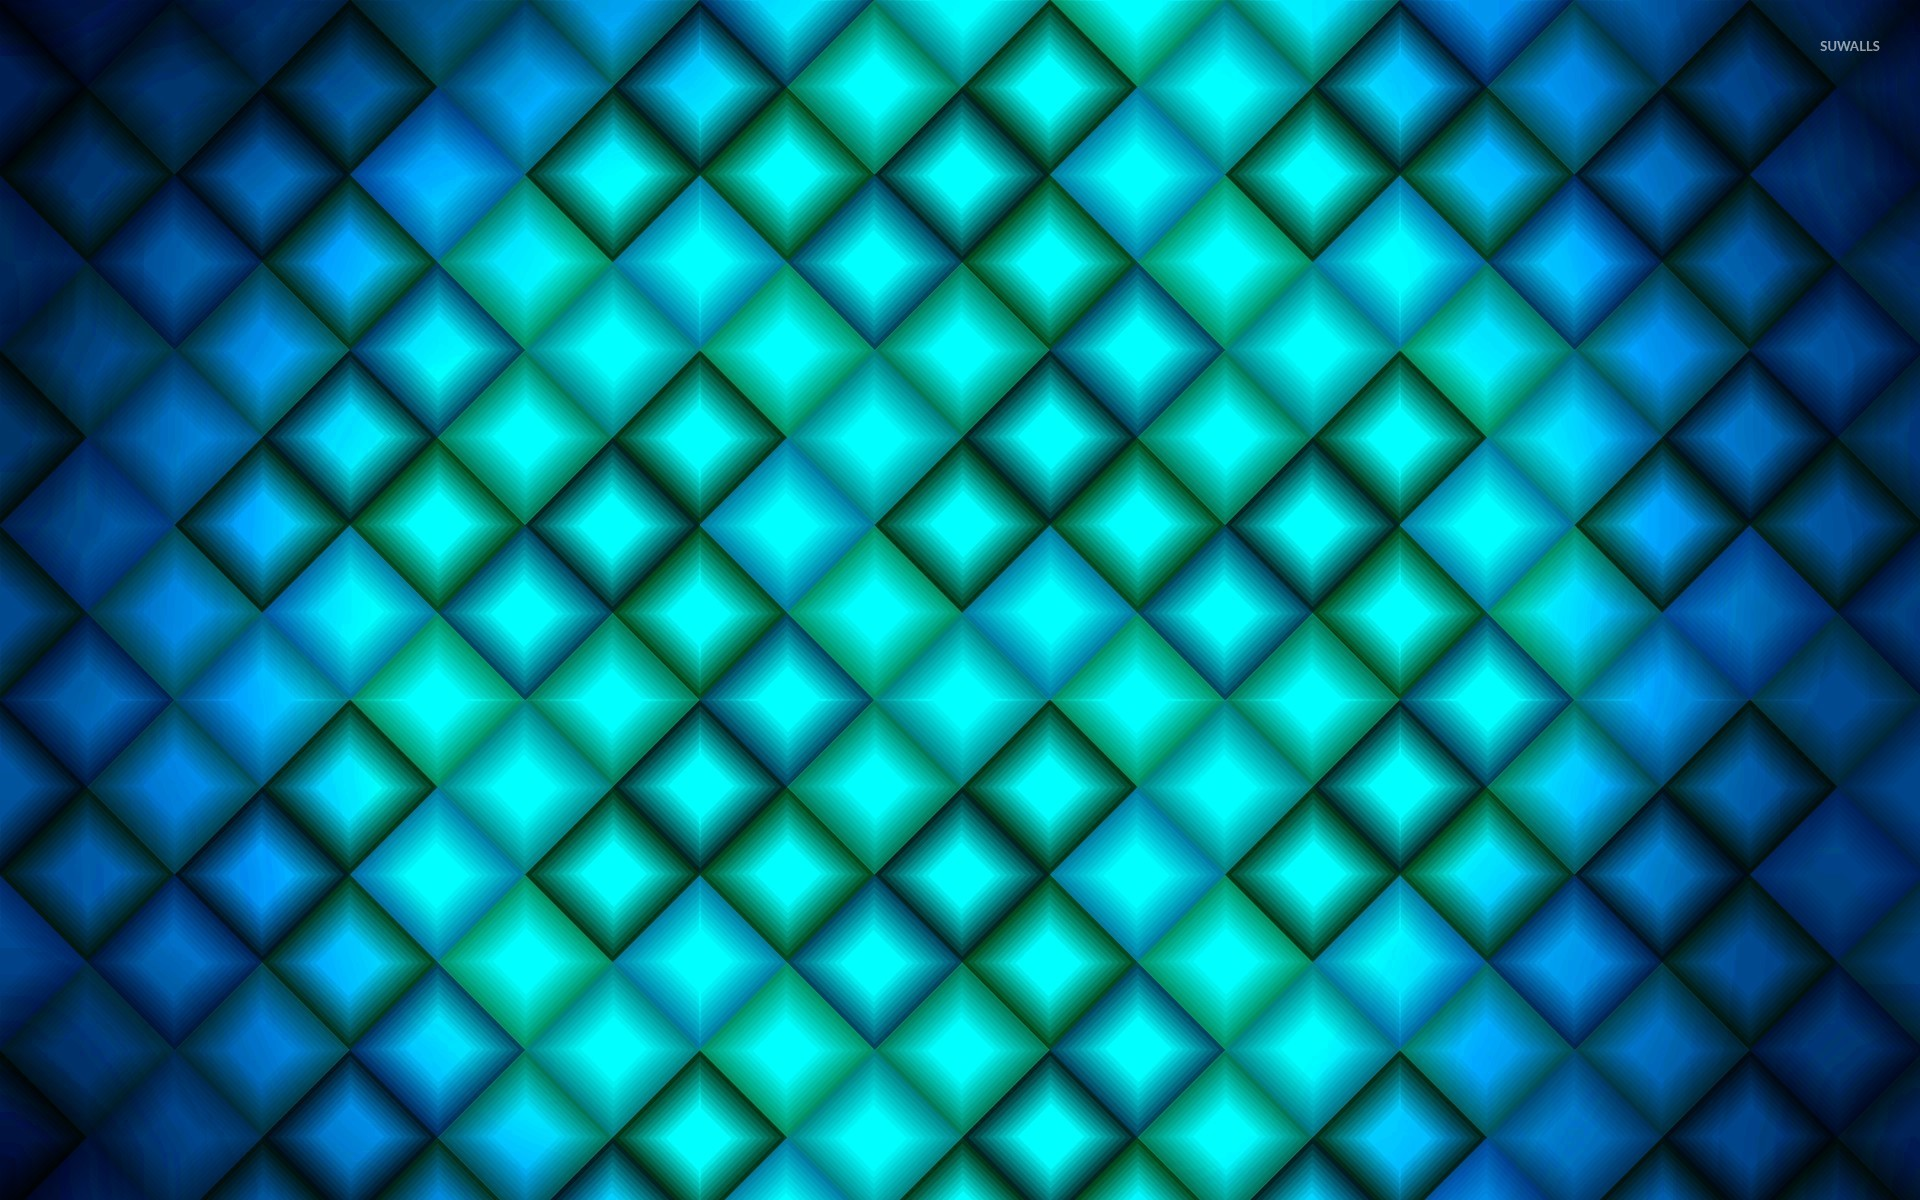 Diamond Pattern 2 Wallpaper